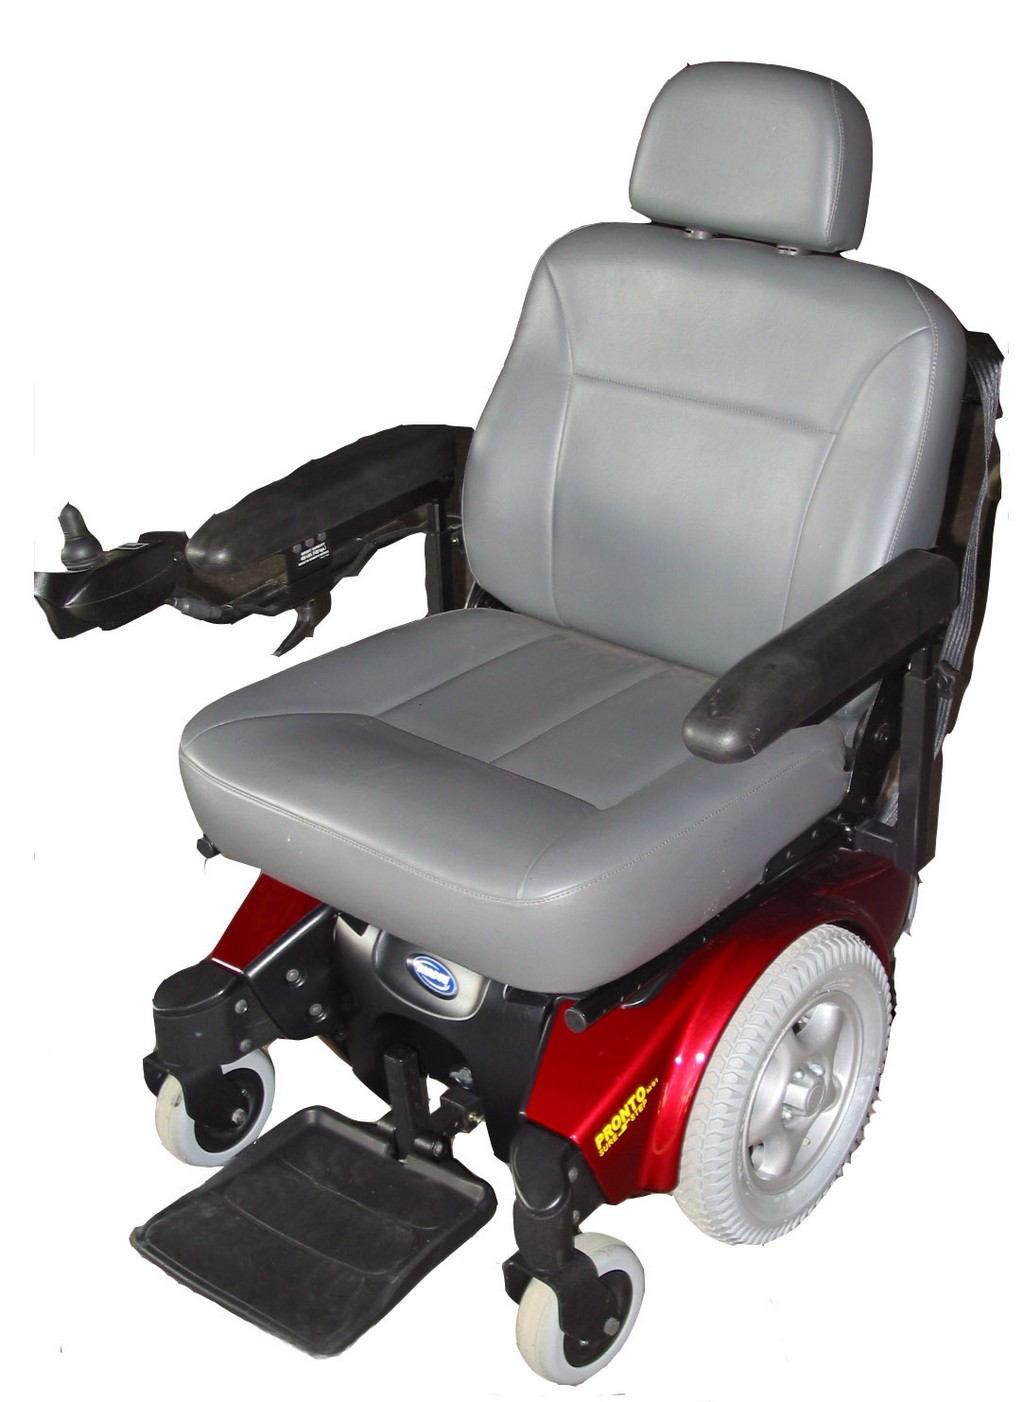 bruno electric wheelchair buy, chair electric wheel, jazzy electric wheelchairs, need to buy electric wheel chair